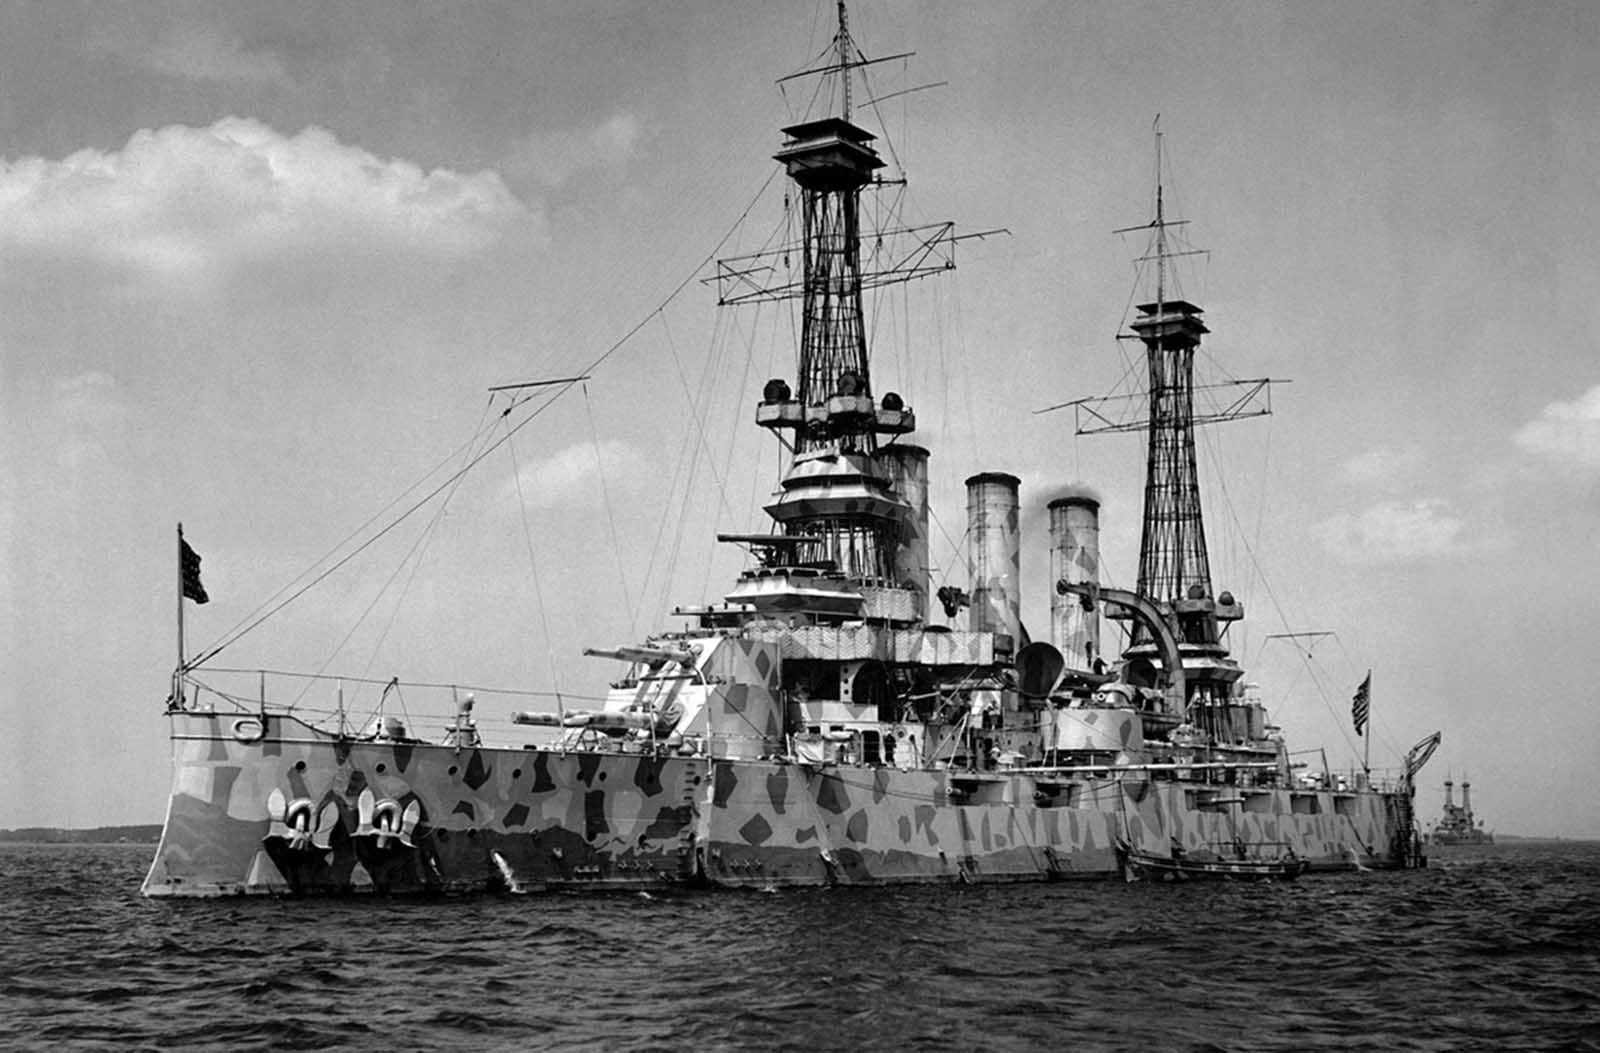 The USS New Jersey (BB-16), a Virginia-class battleship, in camouflage coat, ca 1918.